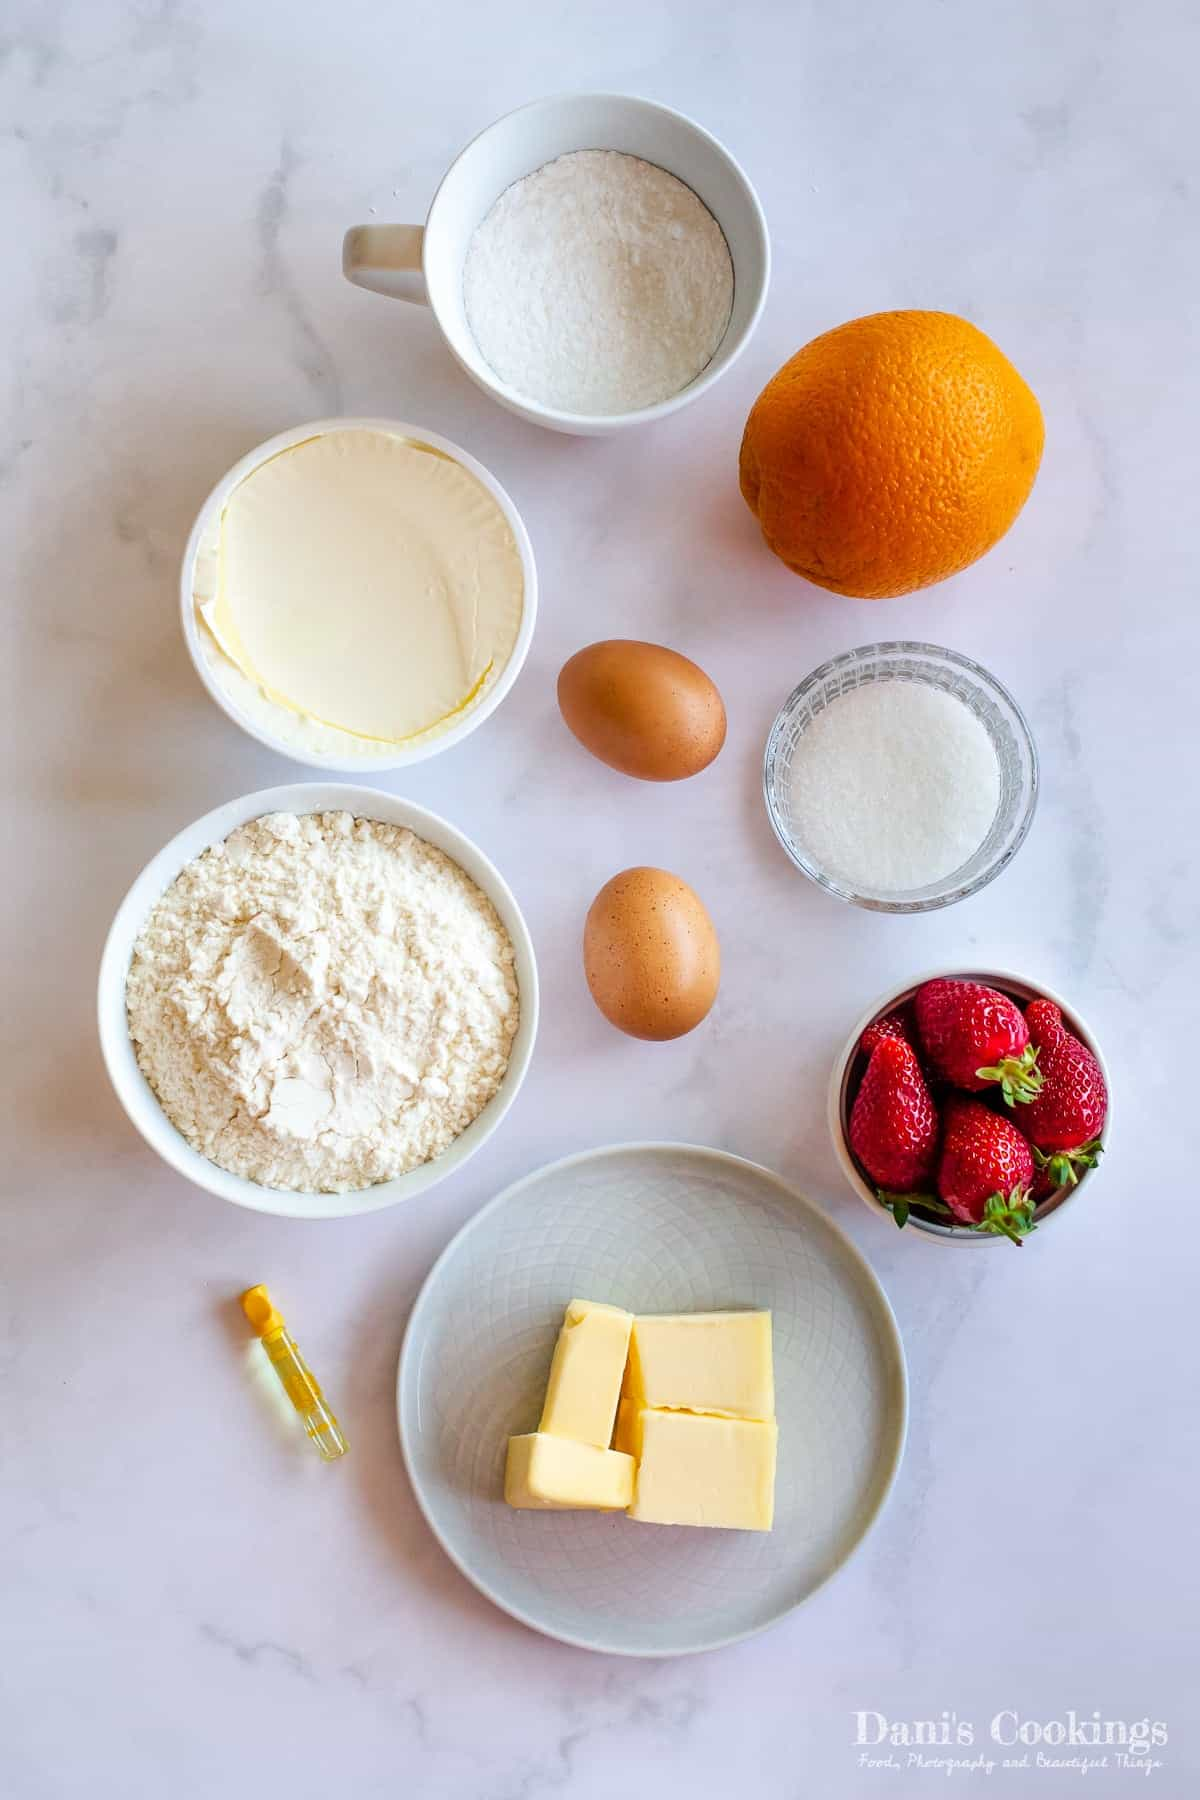 ingredients for the tart